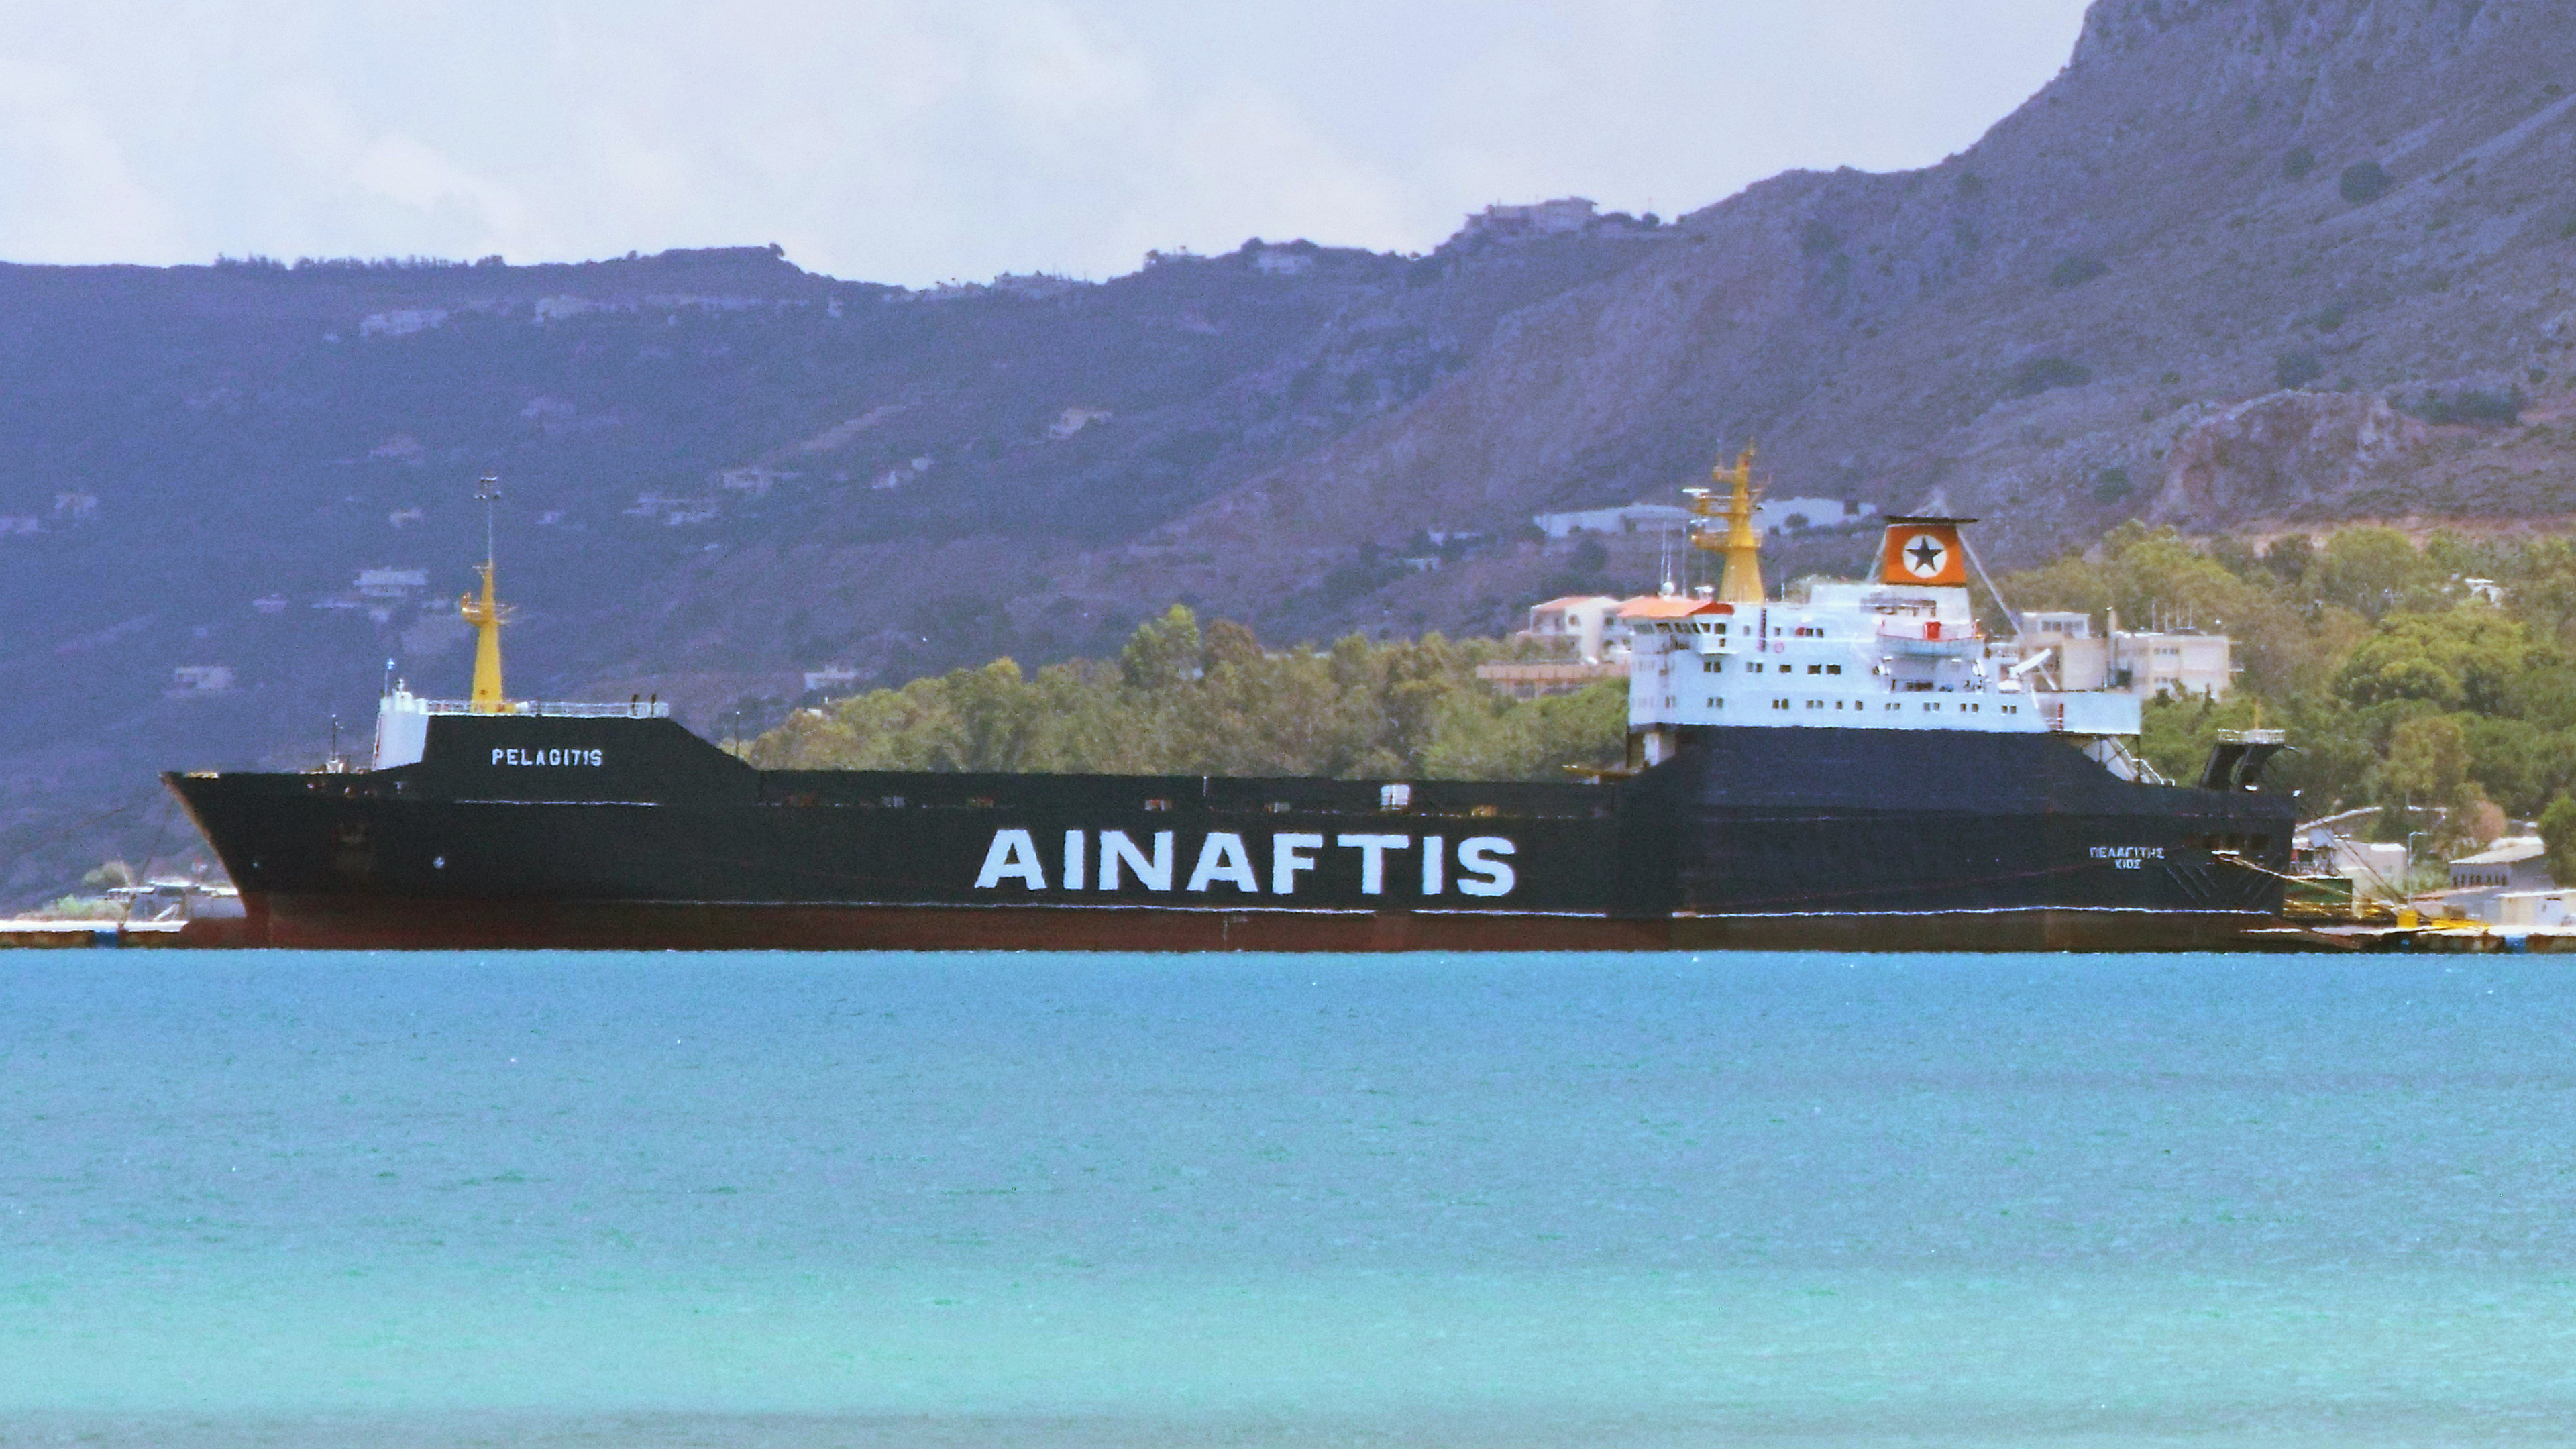 MV Atlantic Freighter - Wikipedia